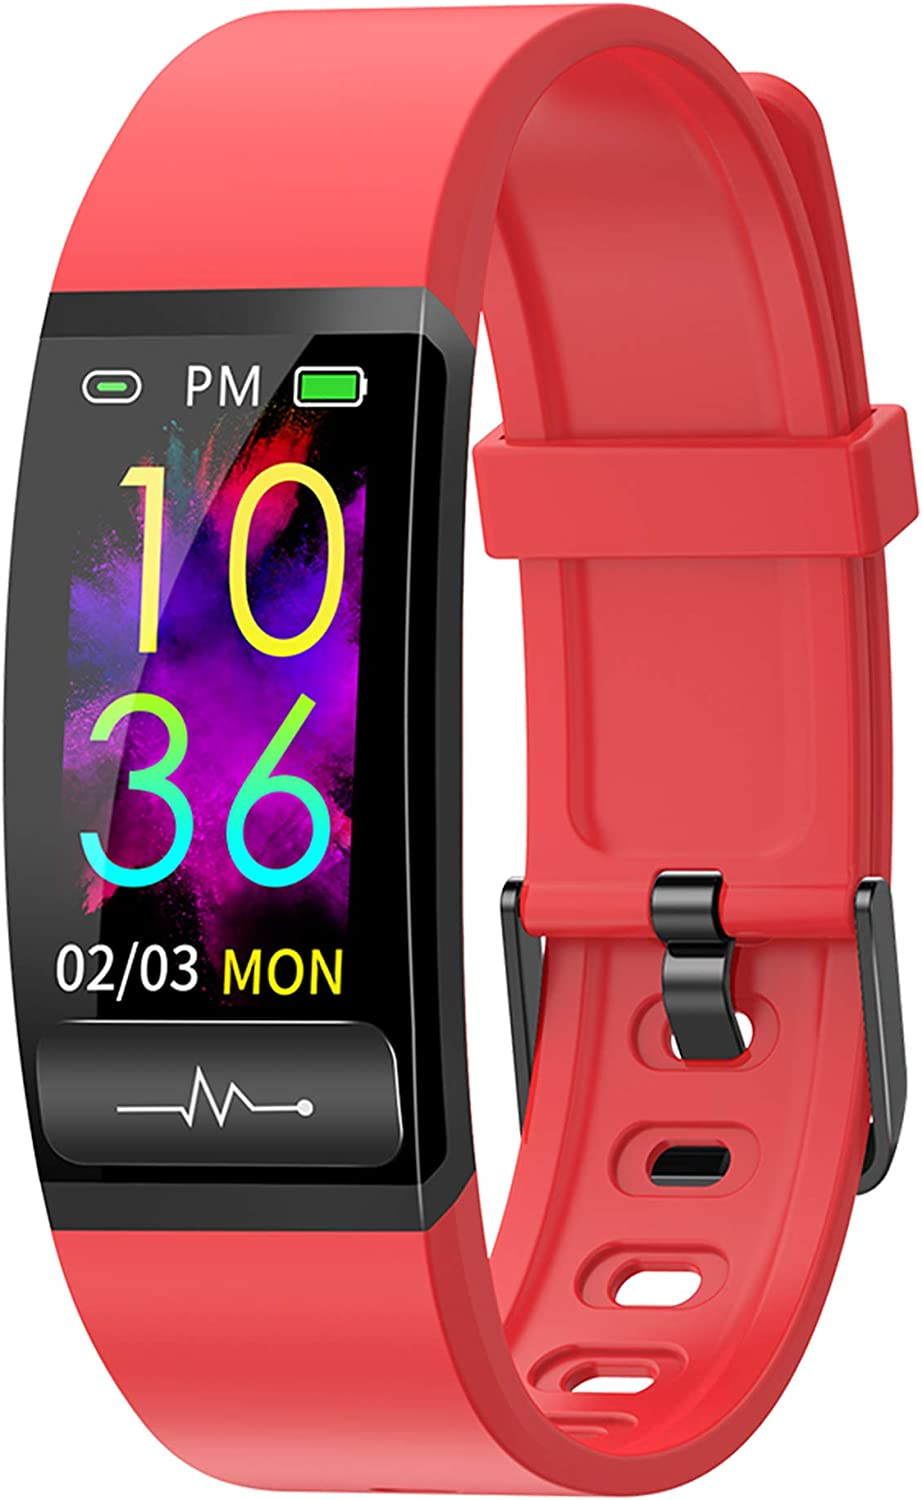 Smart Watch, Hongmed Fitness Watch with Body Temperature Blood Pressure Oxygen Monitor for Android Phones and iPhone Compatible, Waterproof Pedometer Activity Tracker Sleep Monitor for Men Women Red